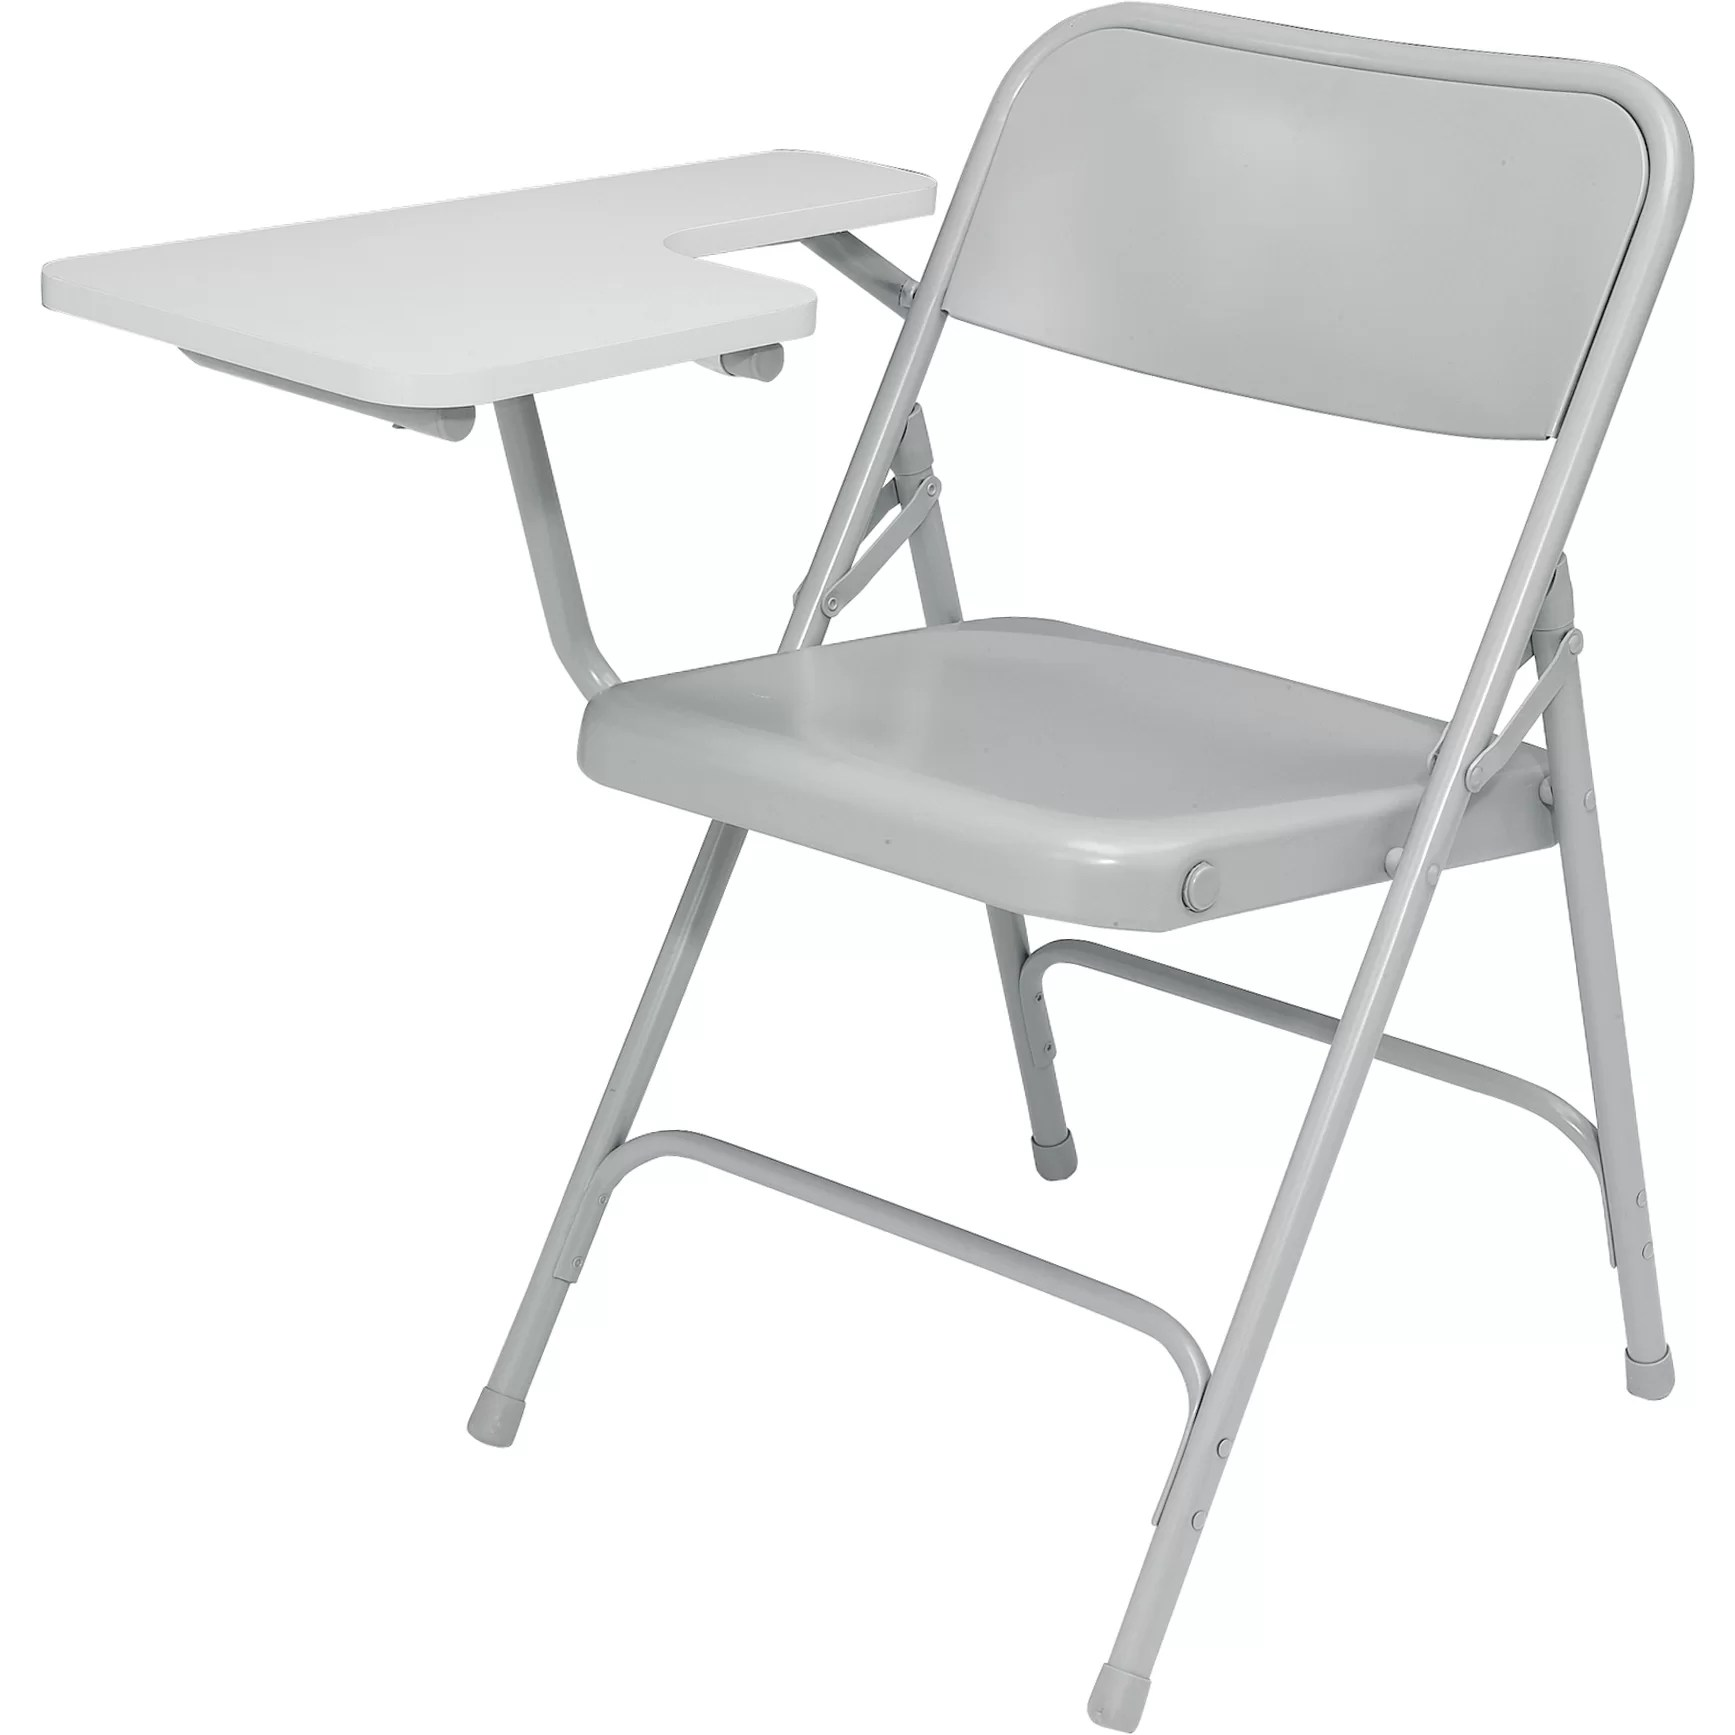 Folding Arm Chair National Public Seating 5200 Series Steel Folding Chair